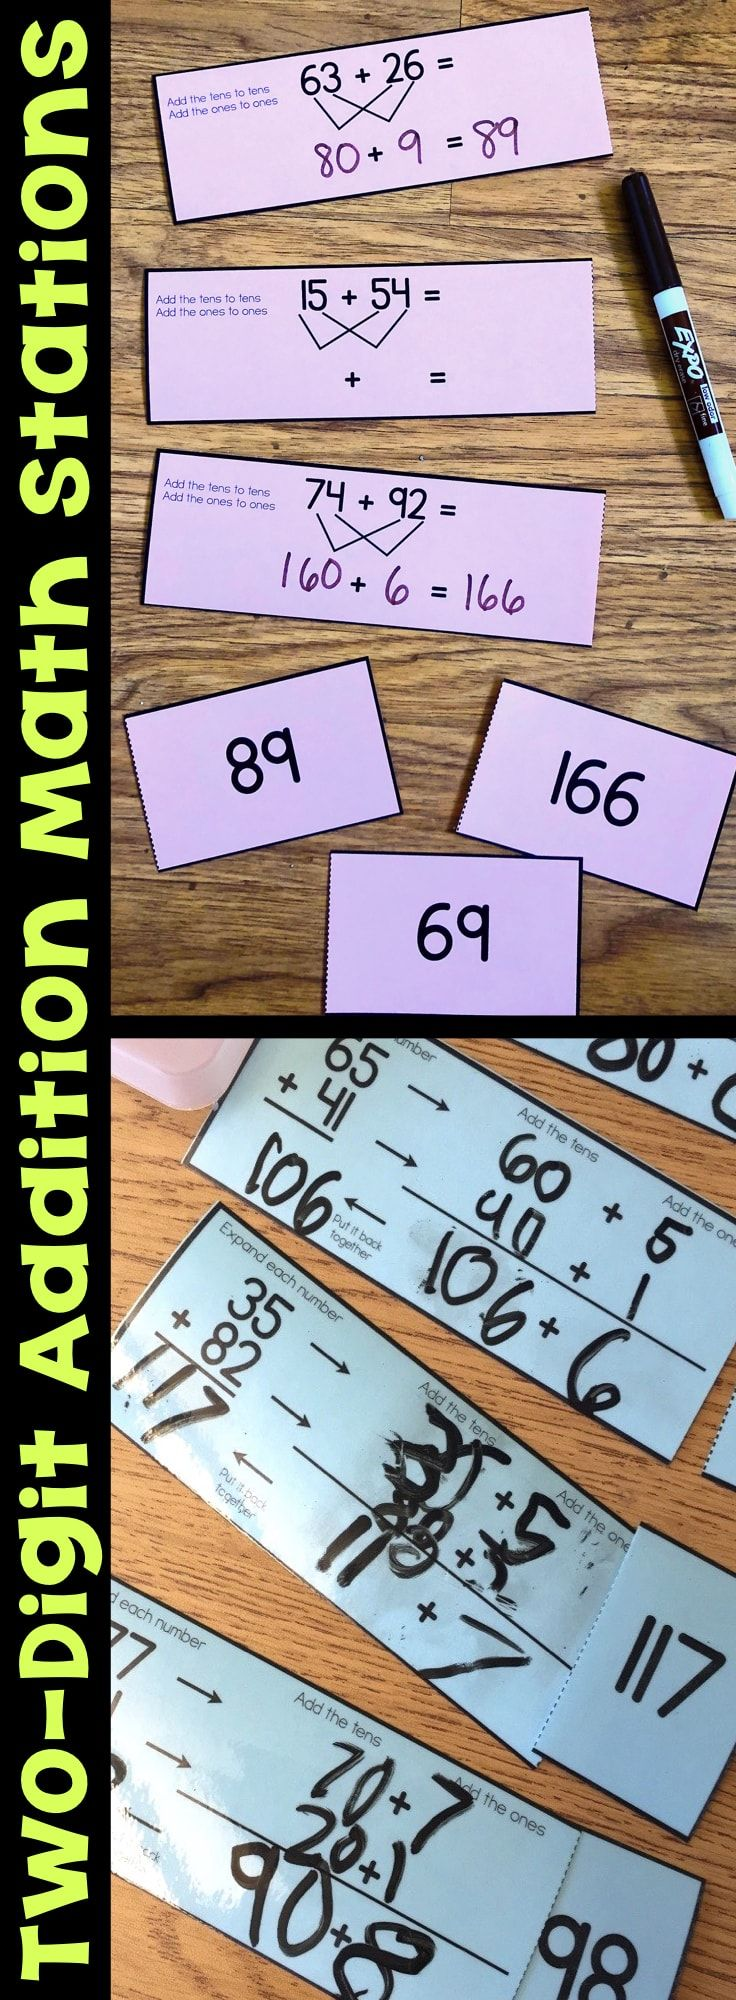 These Two-Digit Addition Math Stations help students use addition strategies and models such as number lines, breaking apart addends, and base-10 blocks. Students will develop their skills with a variety of addition strategies. The two-digit addition math centers are easy to print, laminate, and cut apart, making them durable and reusable year after year. #two-digitaddition